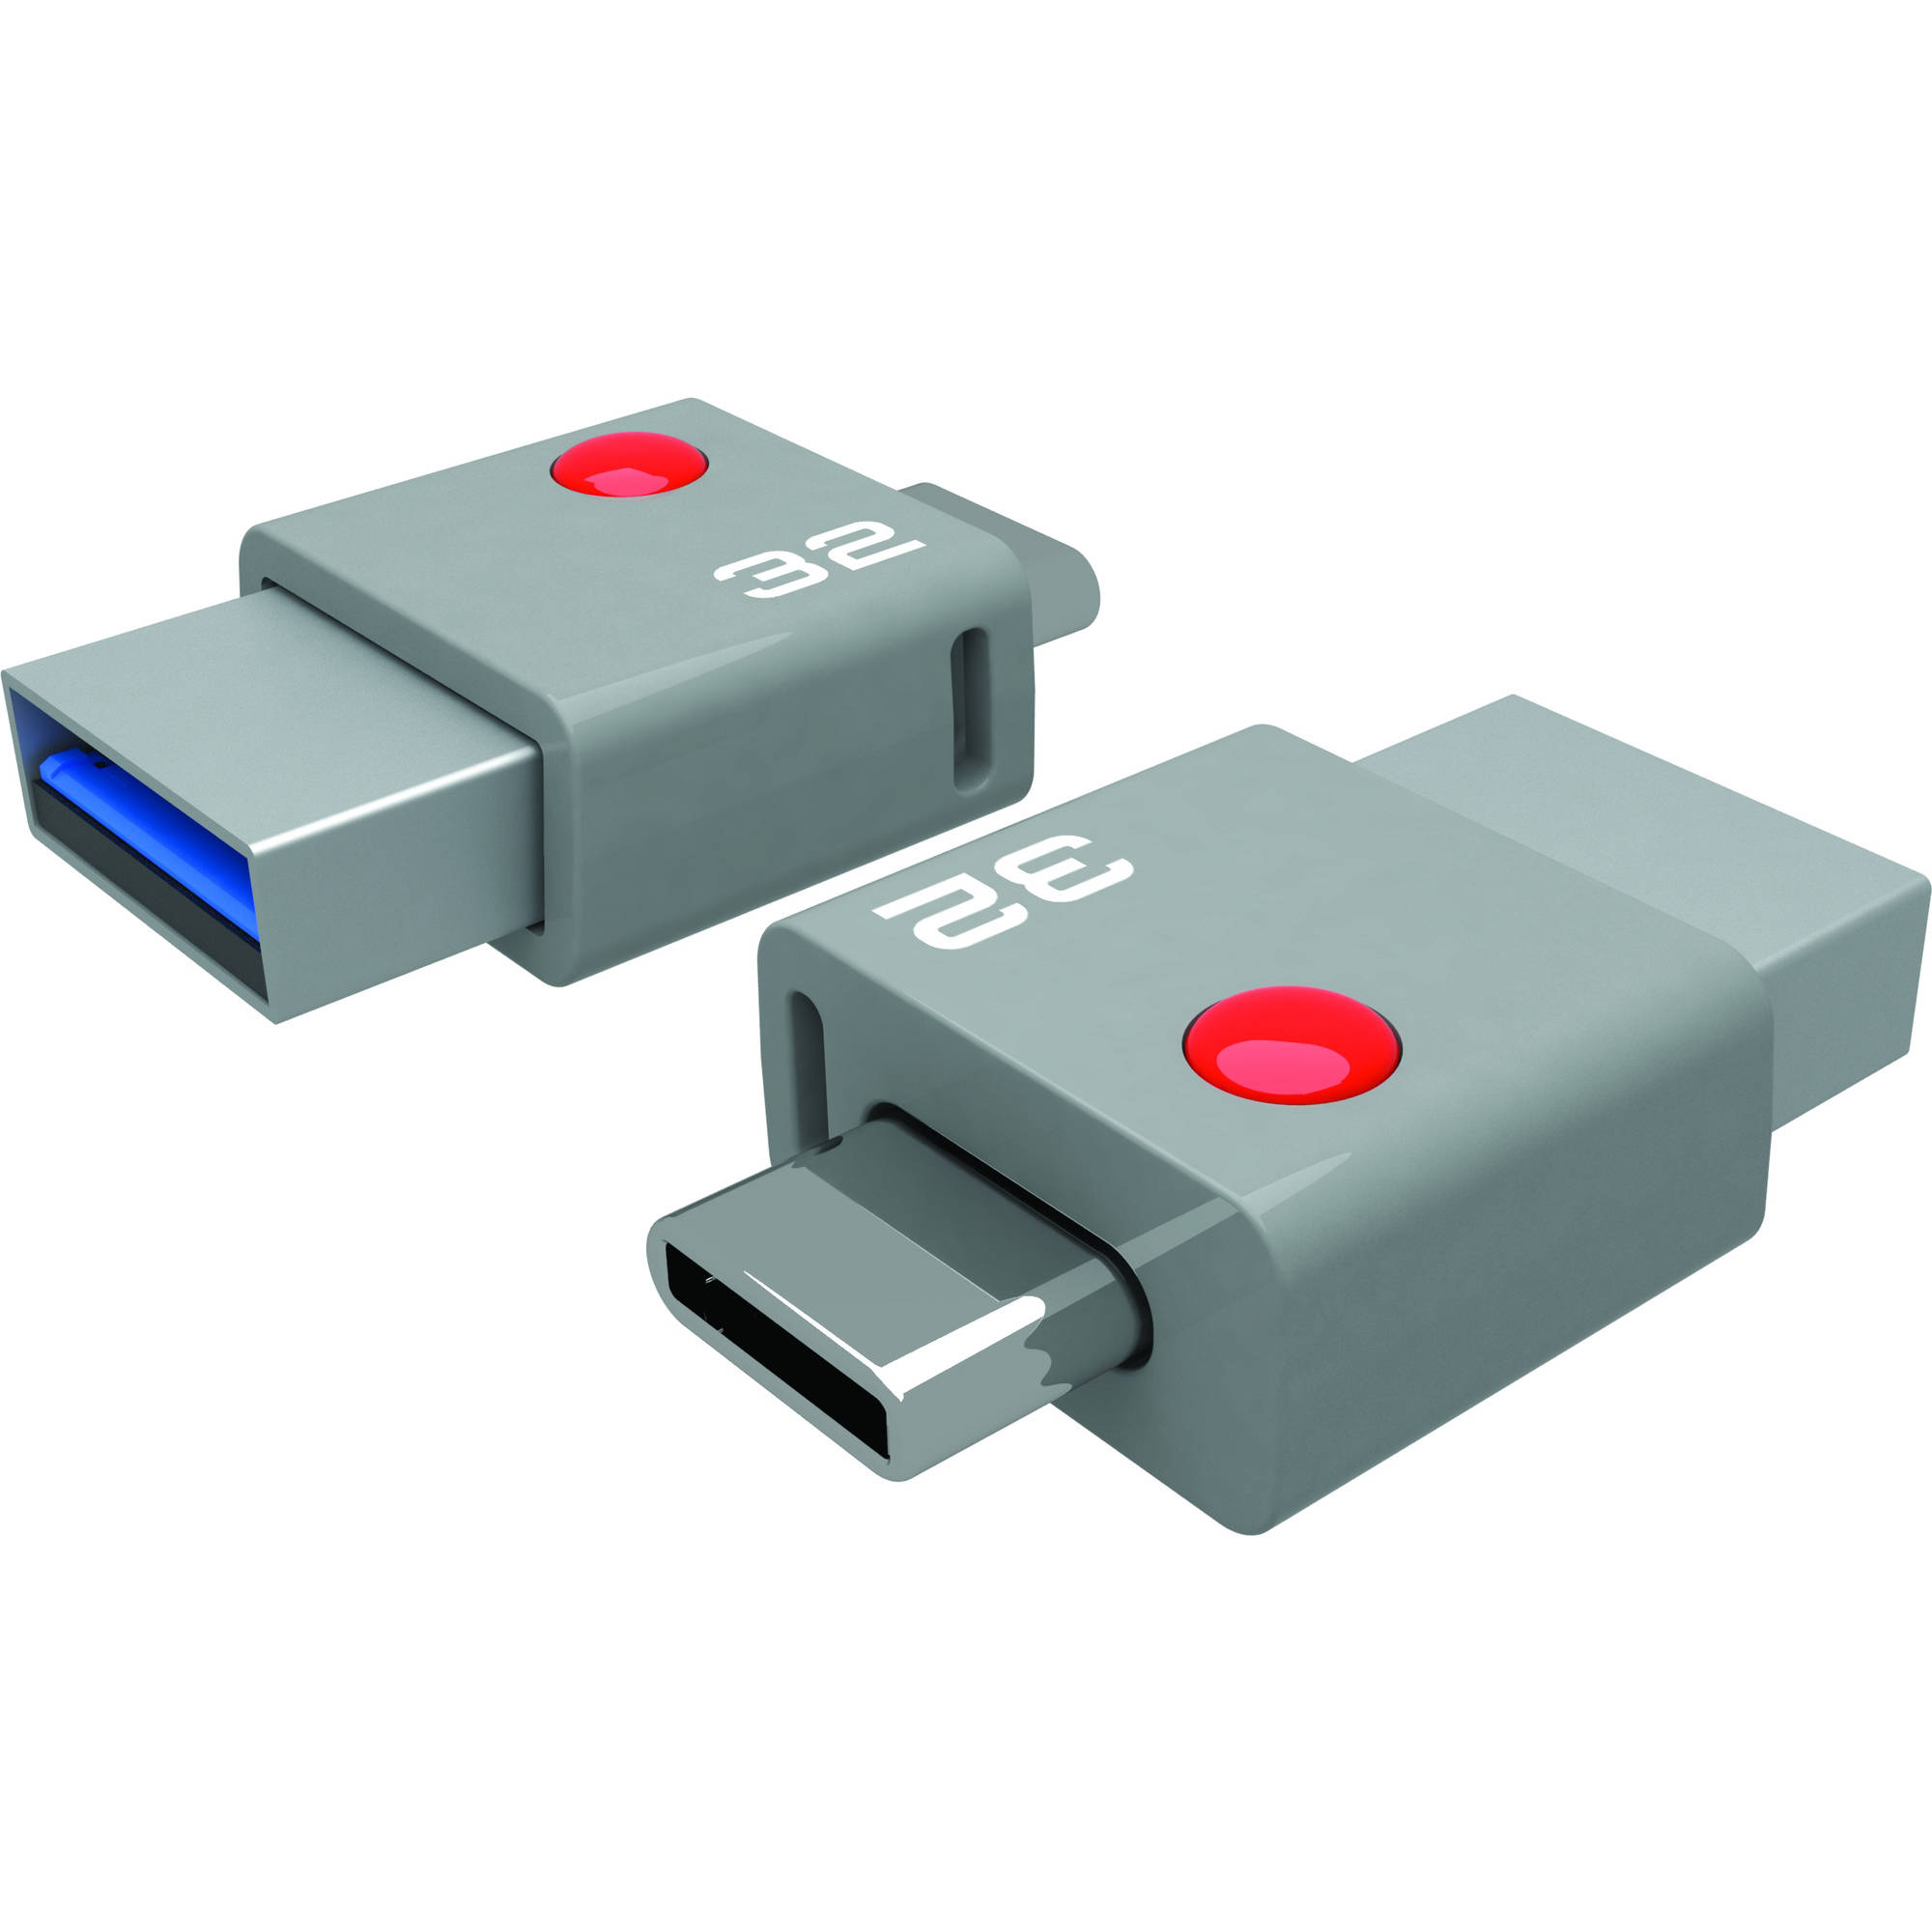 EMTEC Flash Drive USB 3.0 DUO USB-C T400, 32GB